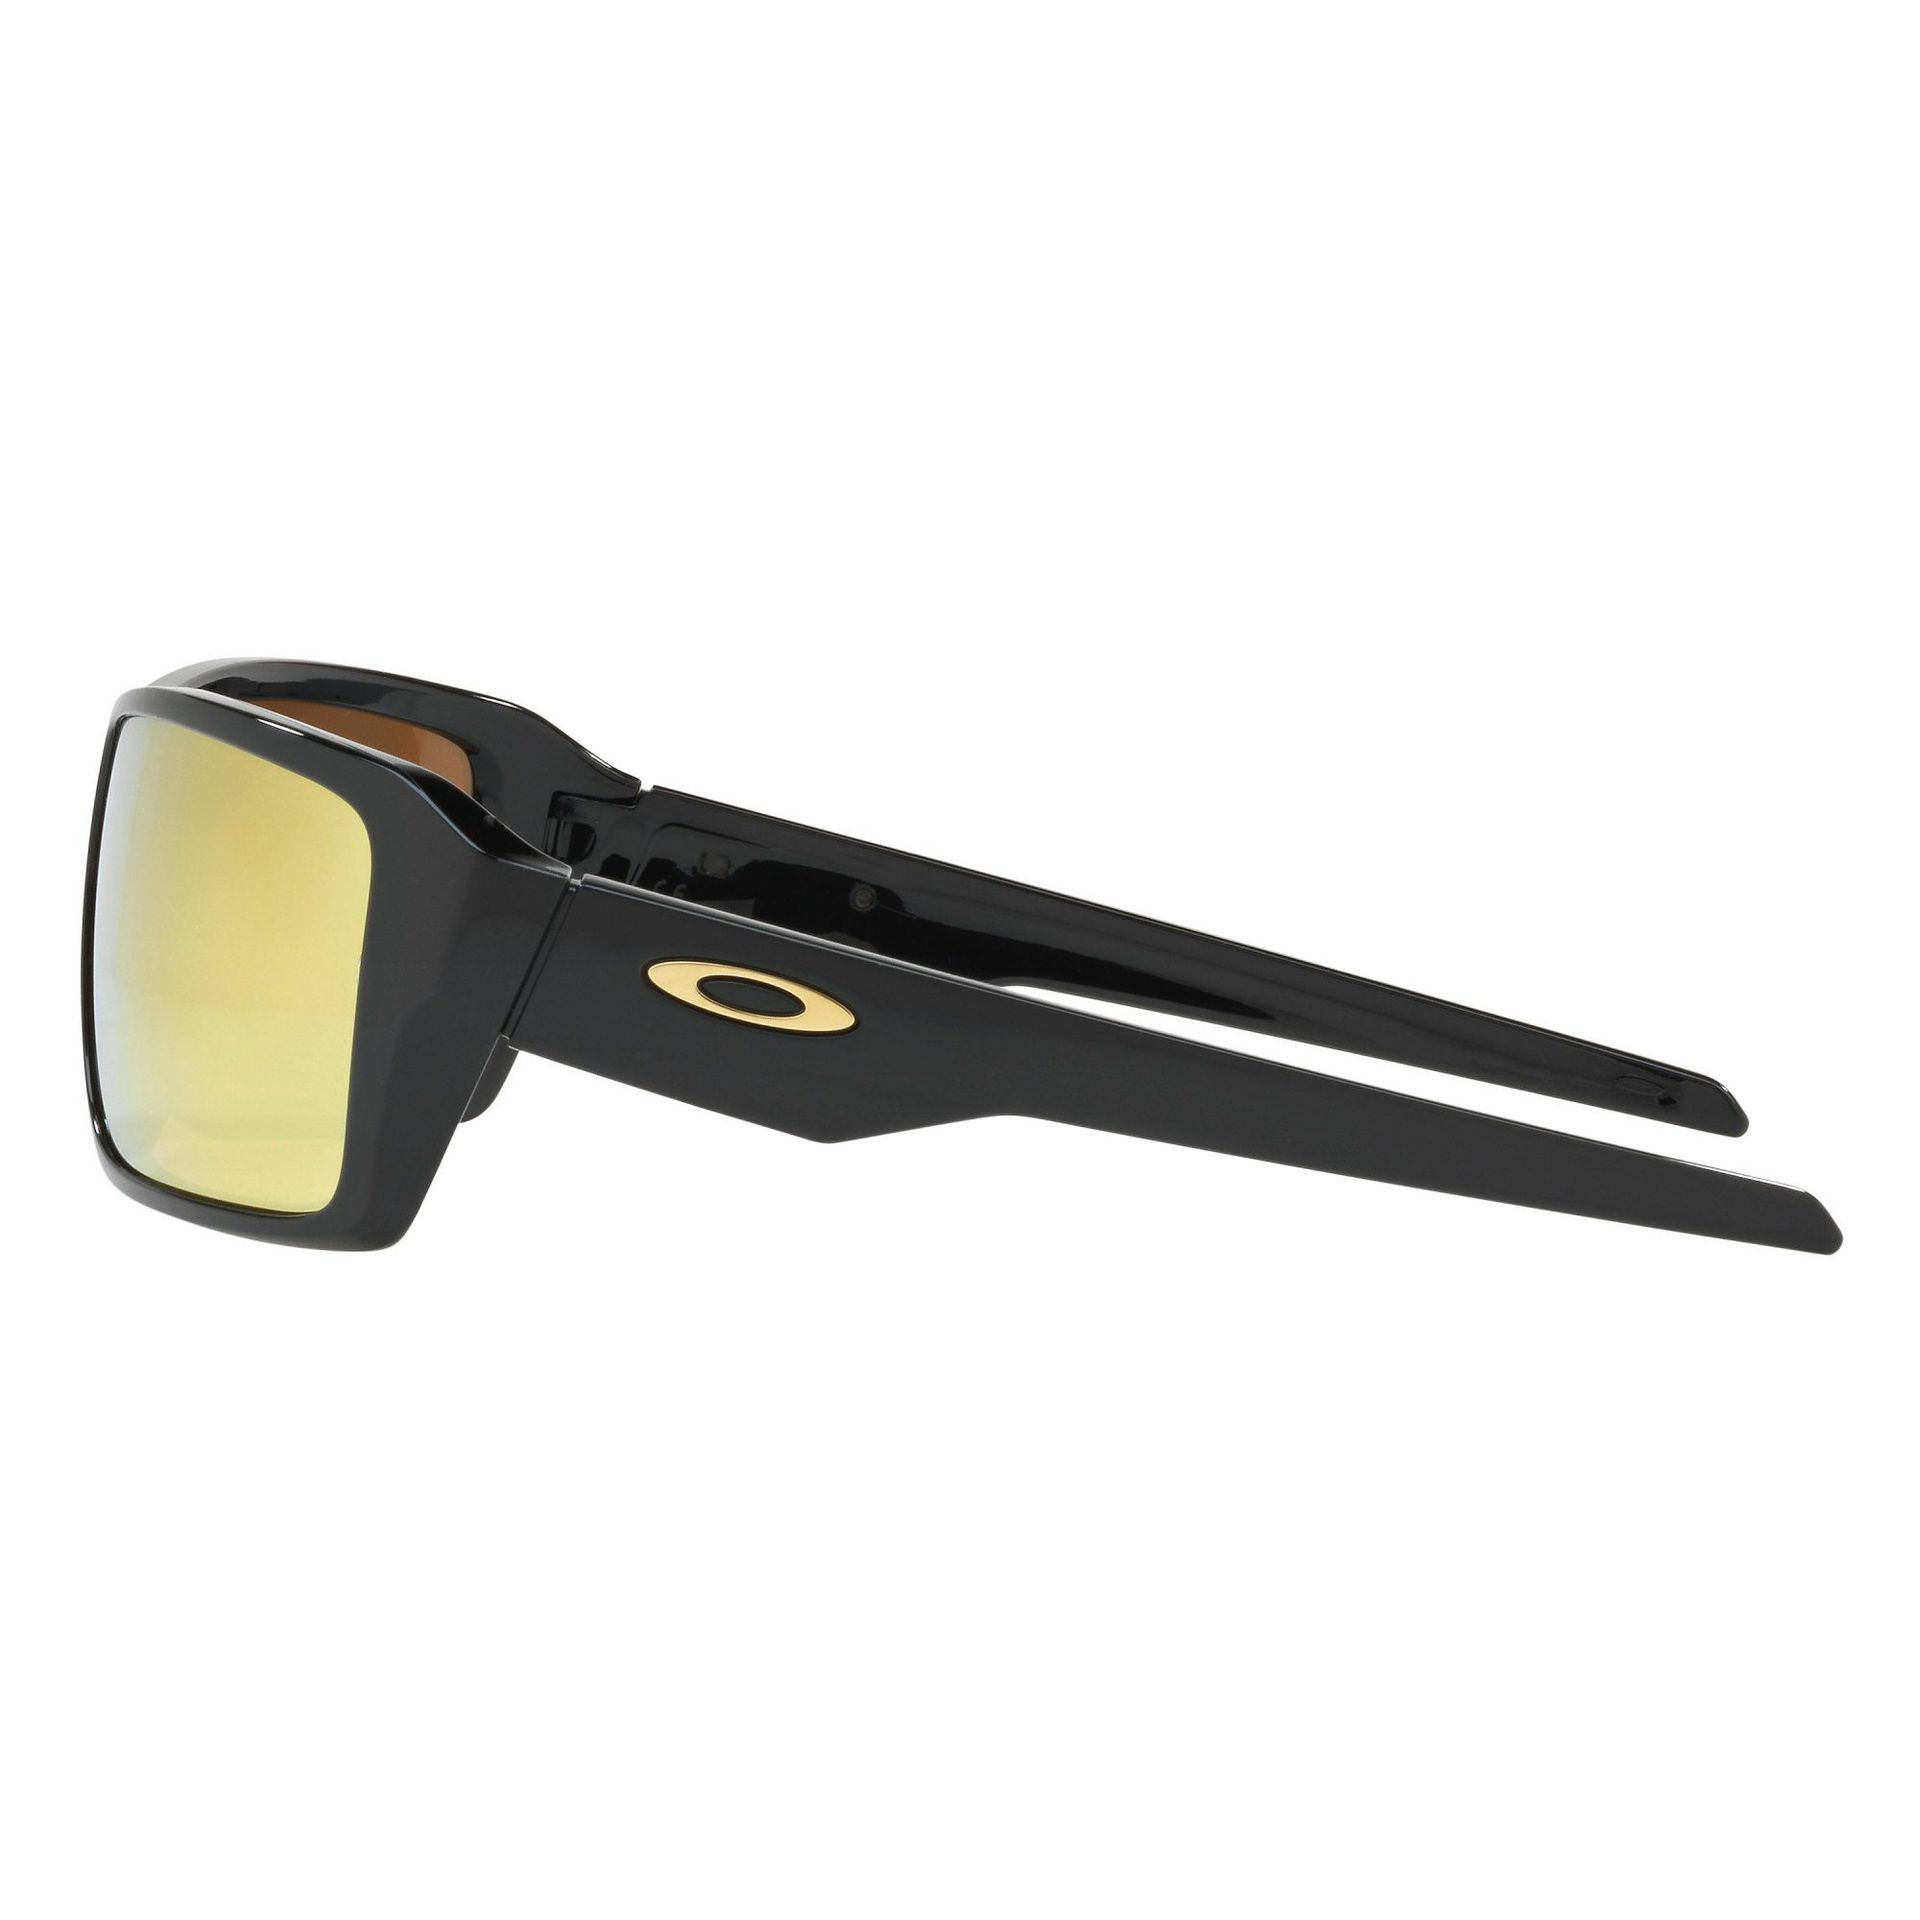 OKULARY OAKLEY DOUBLE EDGE POLISHED BLACK|24K IRIDIUM 3